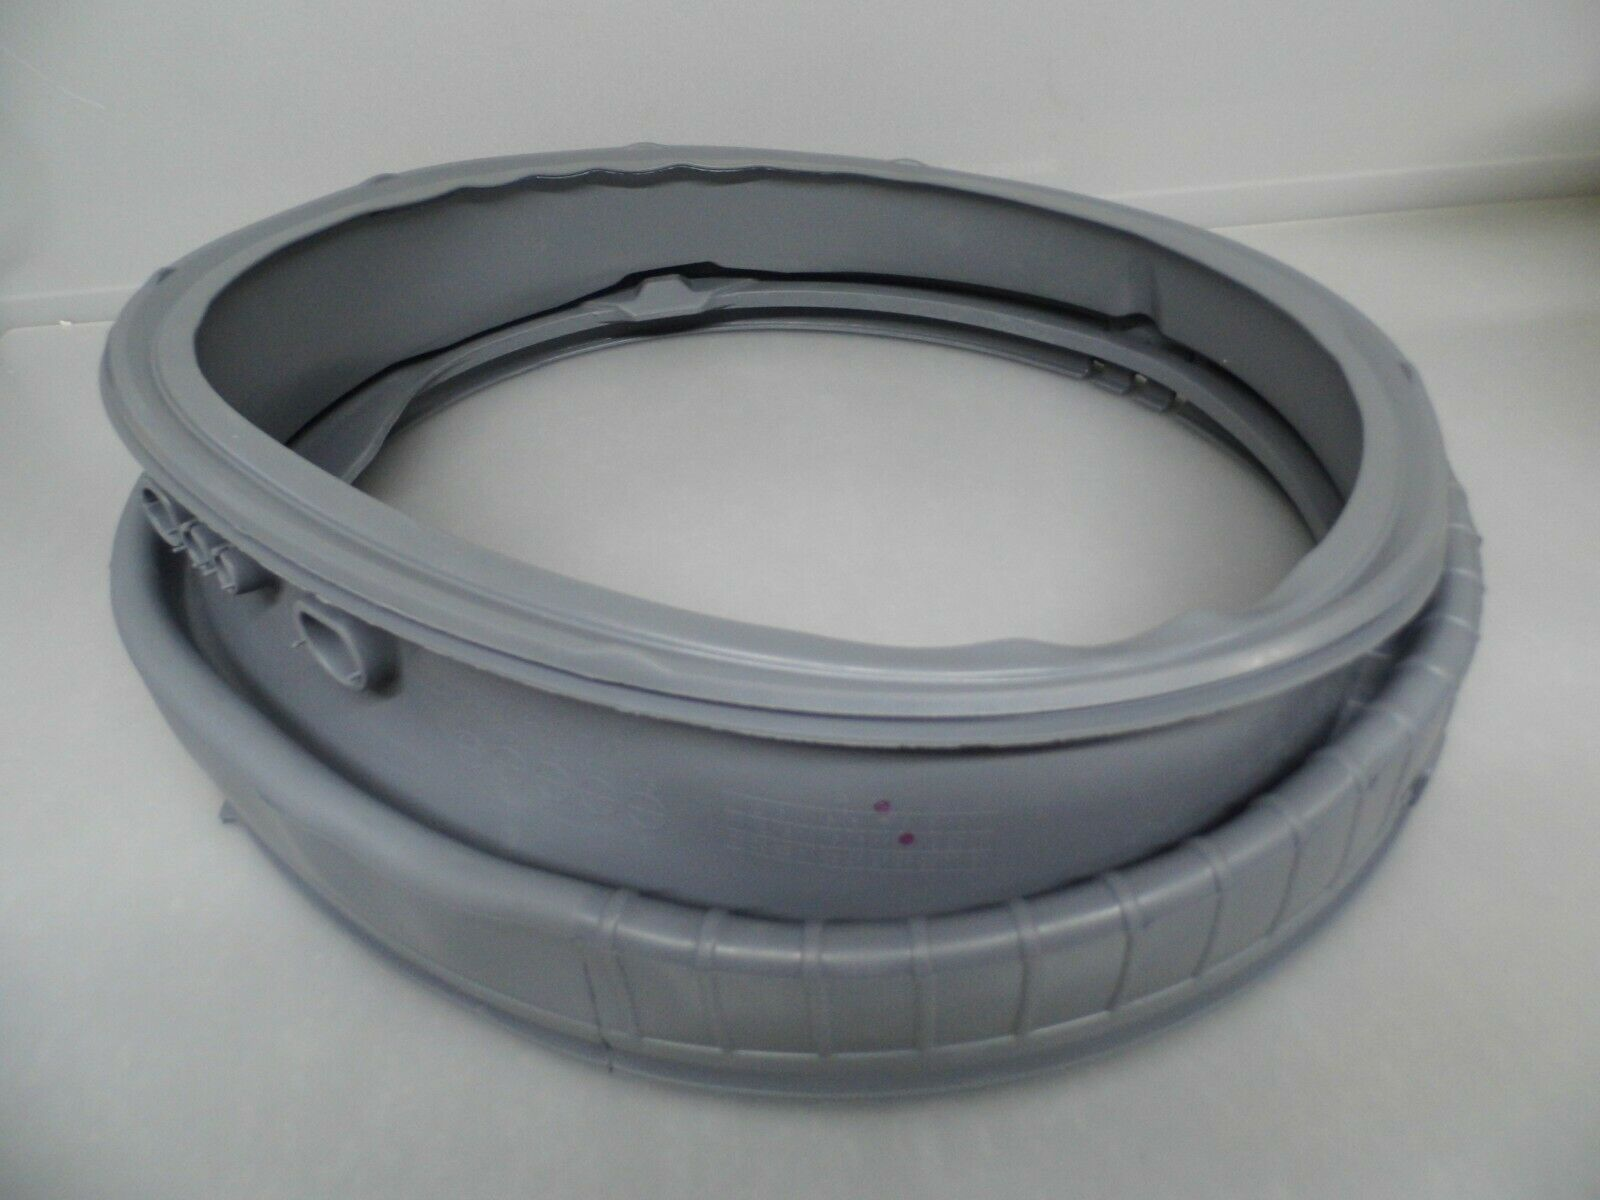 LG Washer Door Boot Seal Kit MDS47123602